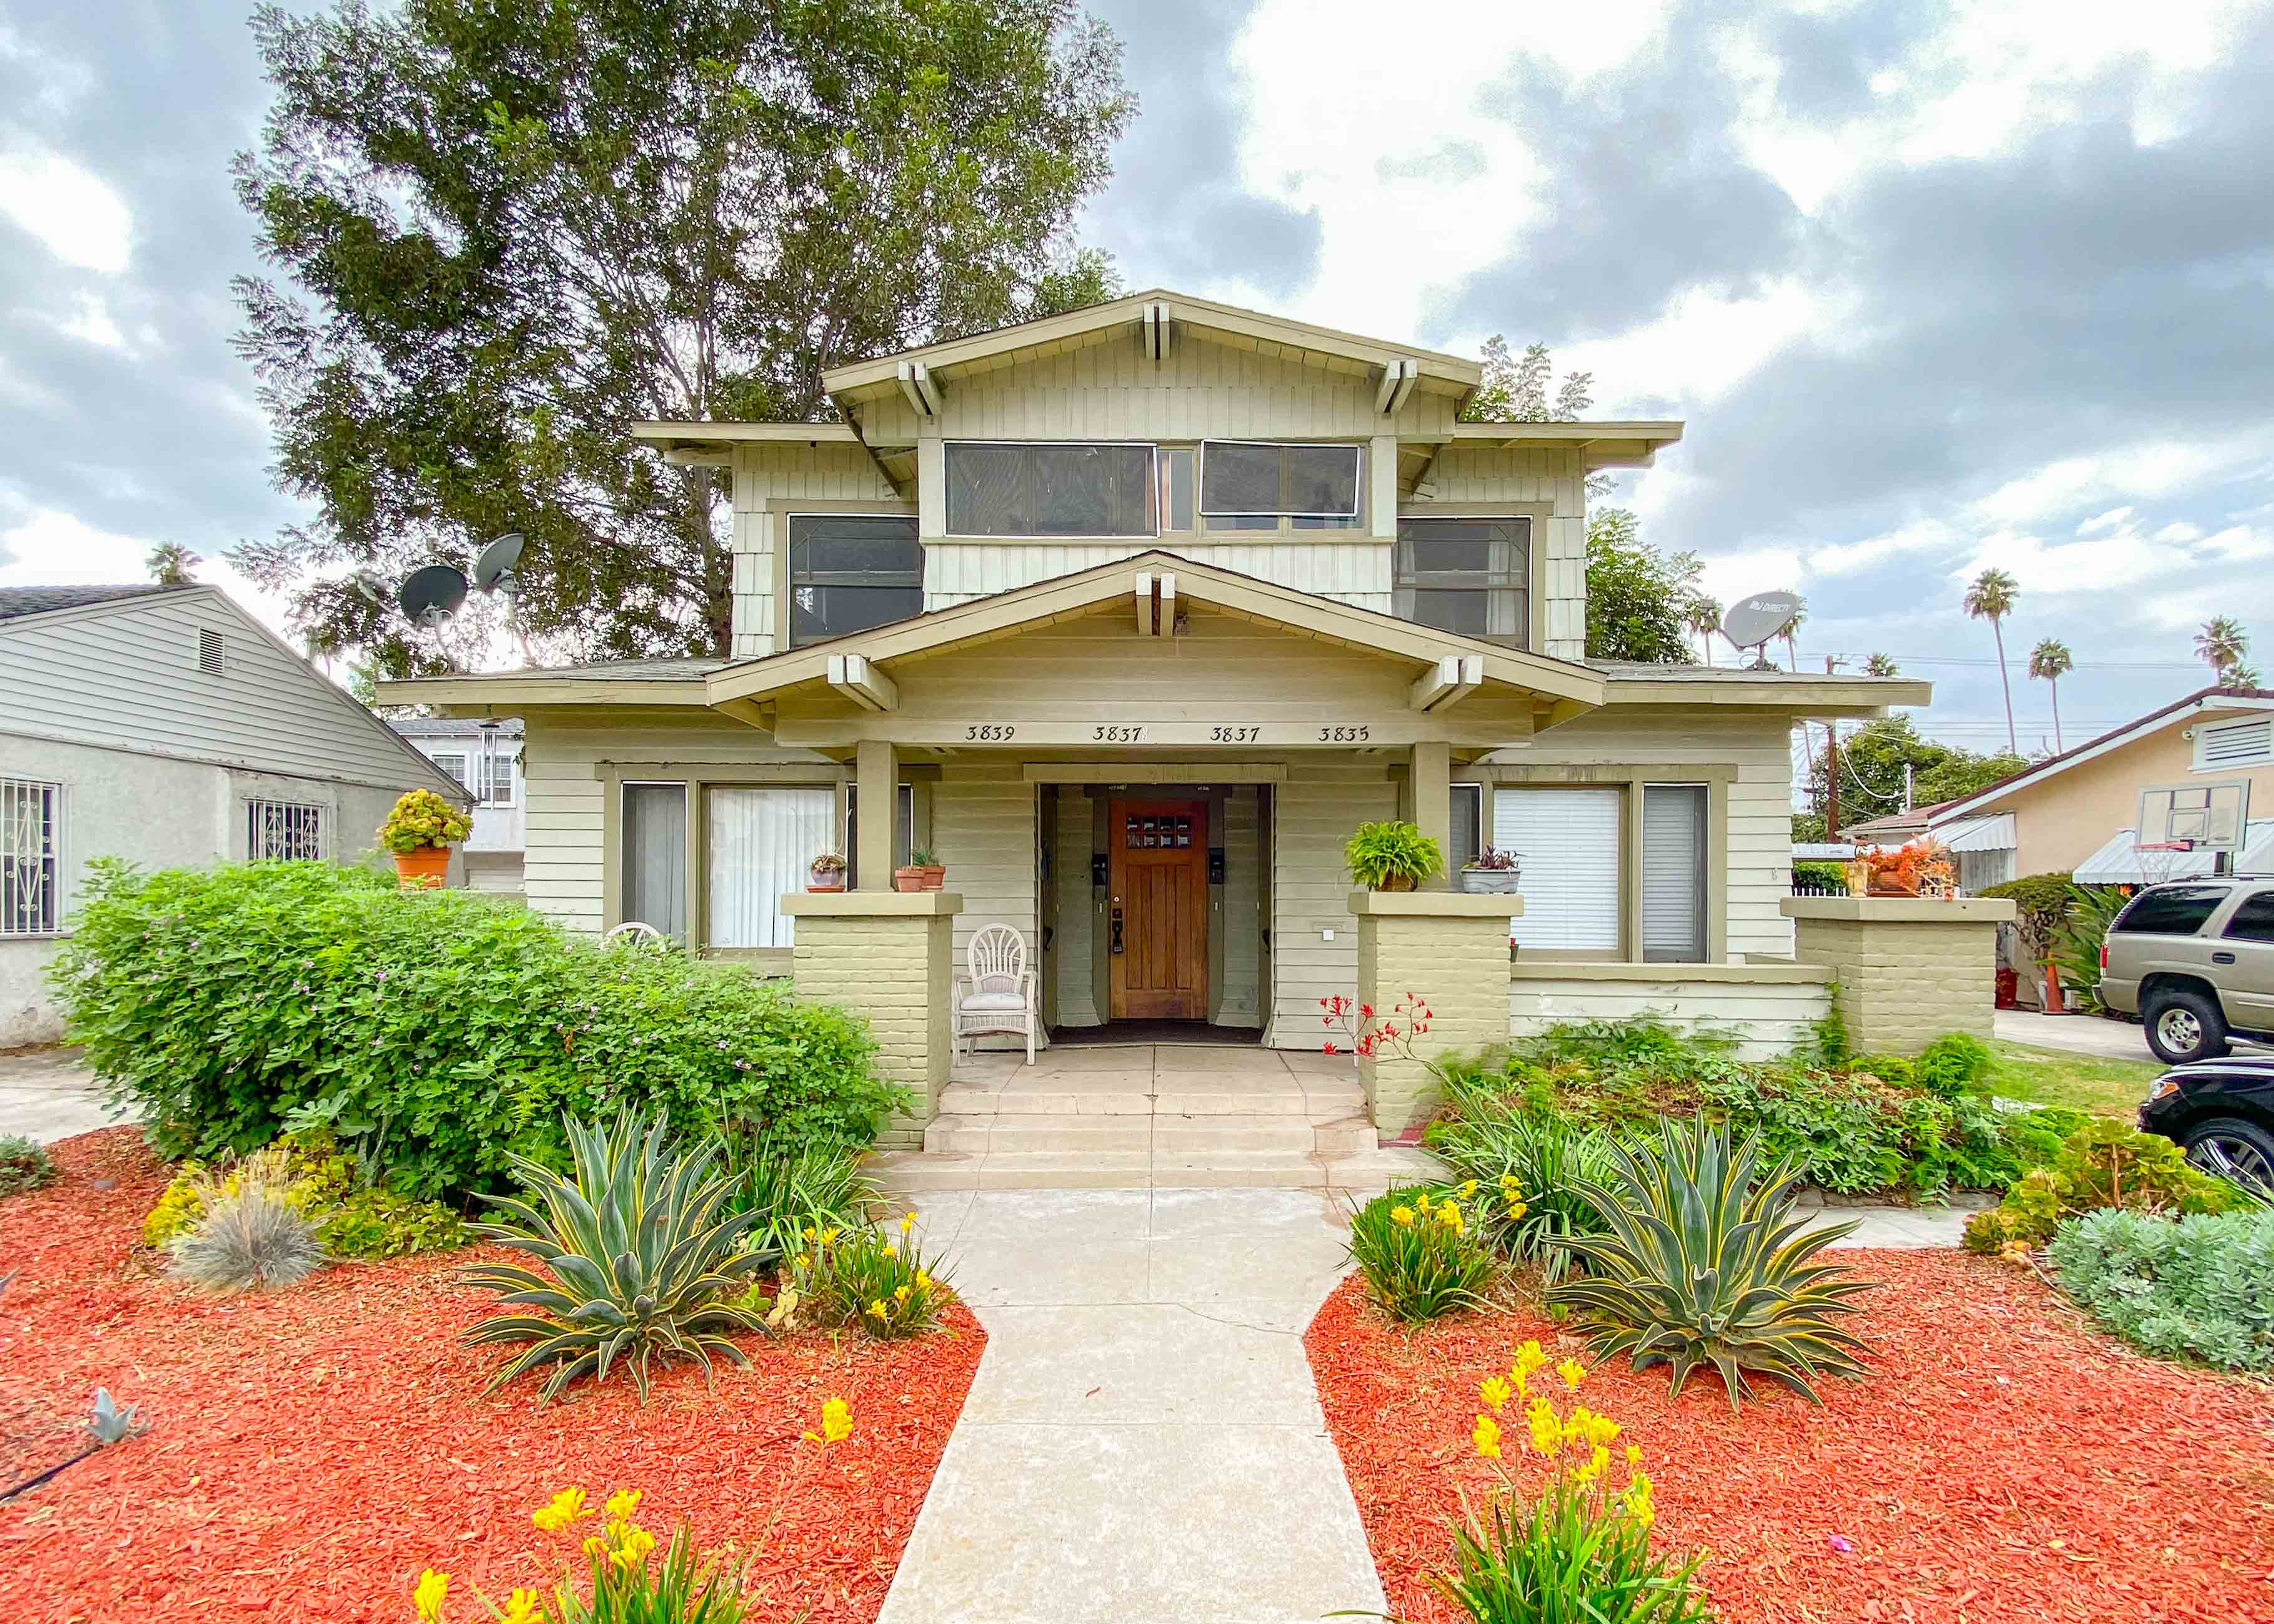 Adorbs & Spacious  Updated Upper 1 Bed - Original Hardwoods -Office- Great Light -  Washer/Dryer- Close to USC and Culver City!